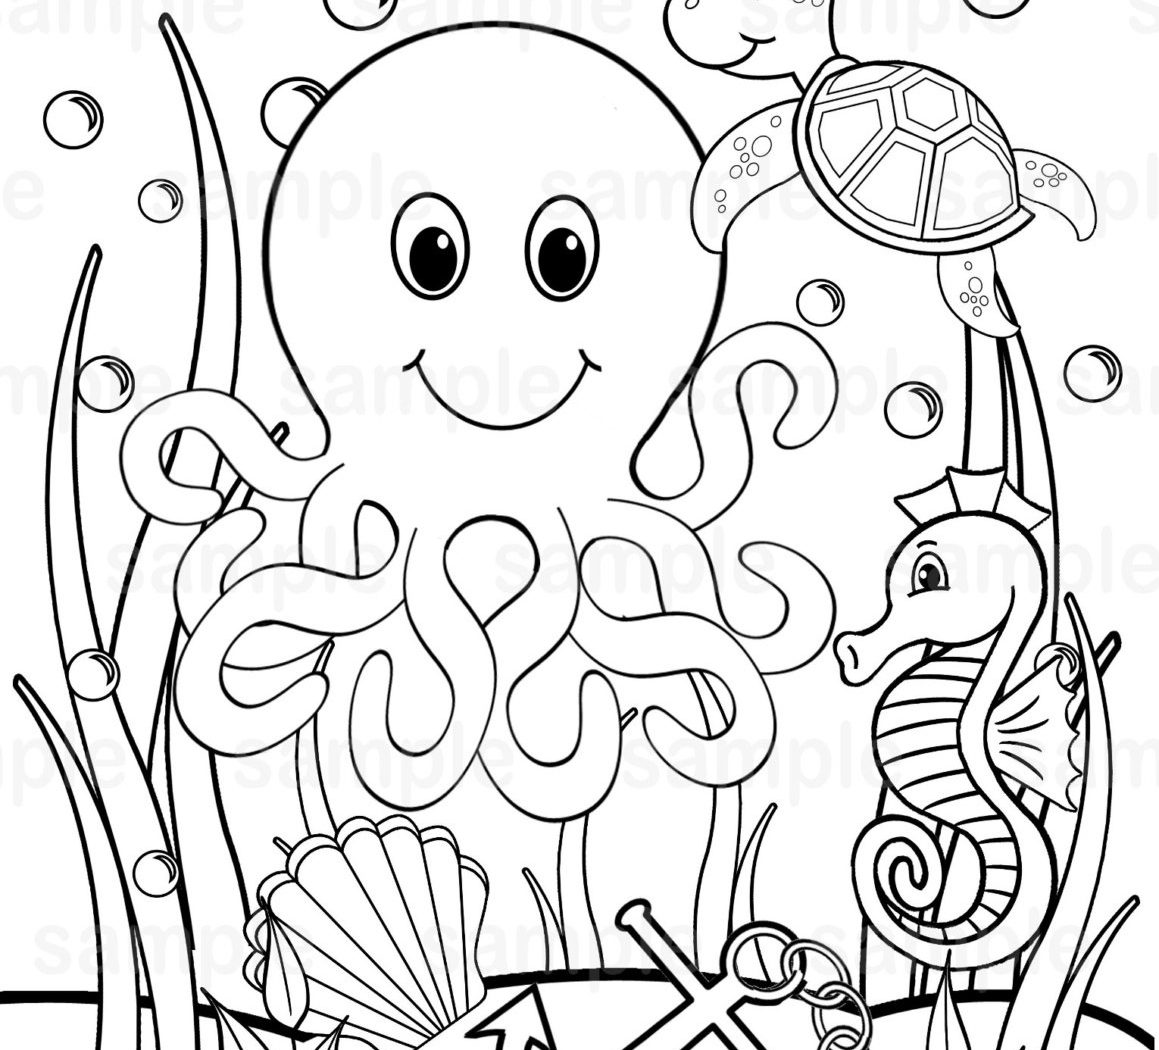 1159x1050 Pond Clipart Ocean Ecosystem And Habitat Free Printable Coloring